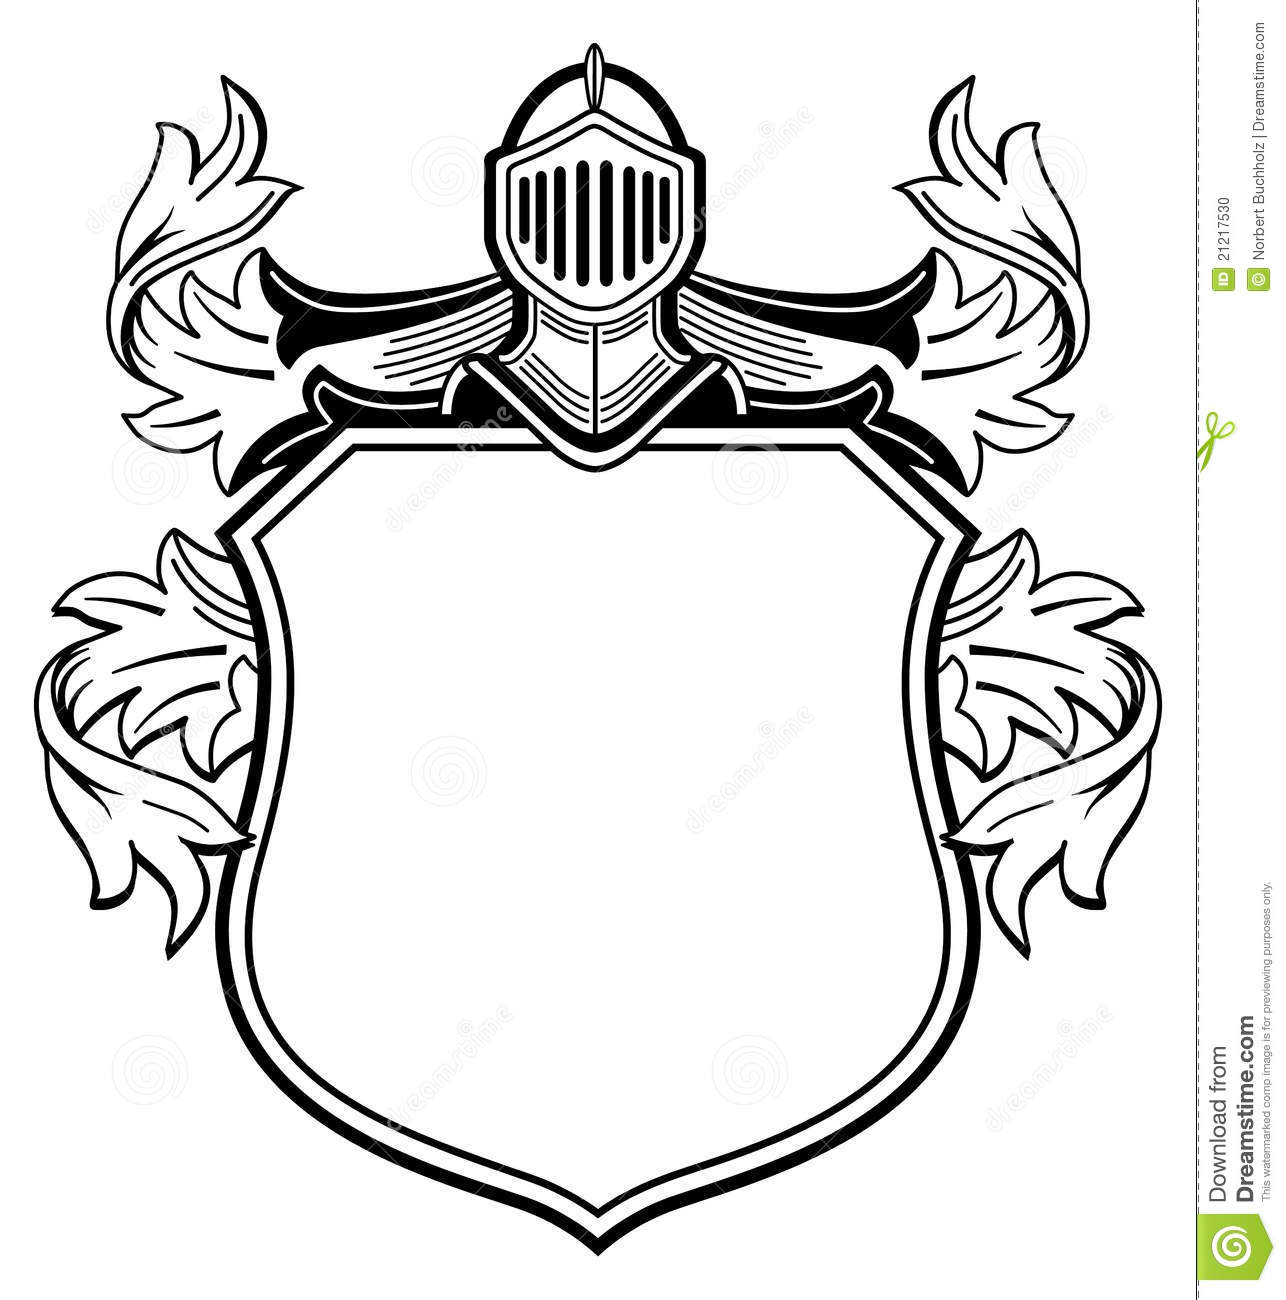 Templates  clipart heraldic Clip of shield Coat Clipart